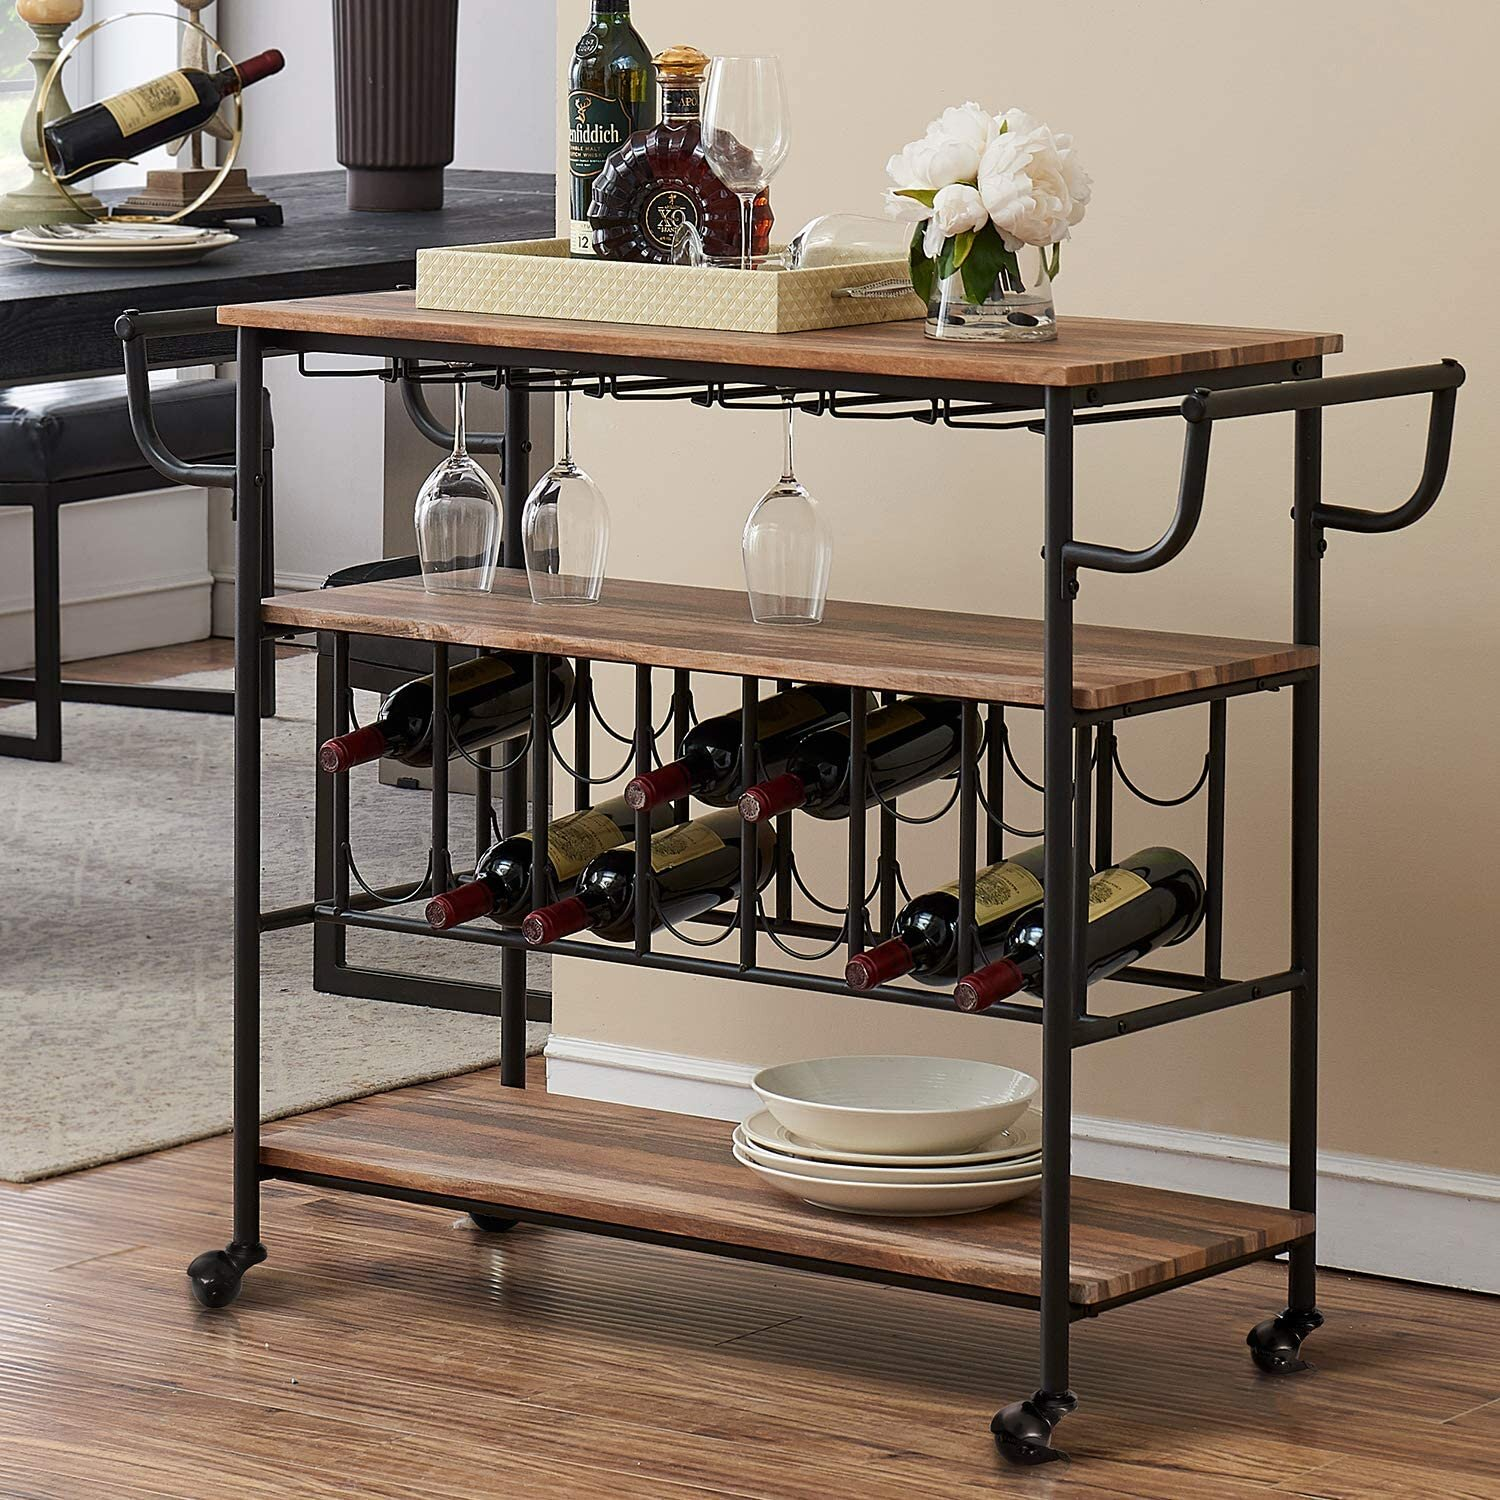 17 Stories Industrial Bar Cart With Wine Rack And Glass Holder Mobile Wine Carts With Wheels For The Home Metal Serving Cart And Kitchen Storage Cart 3 Shelves Vintage Brown Wayfair Ca